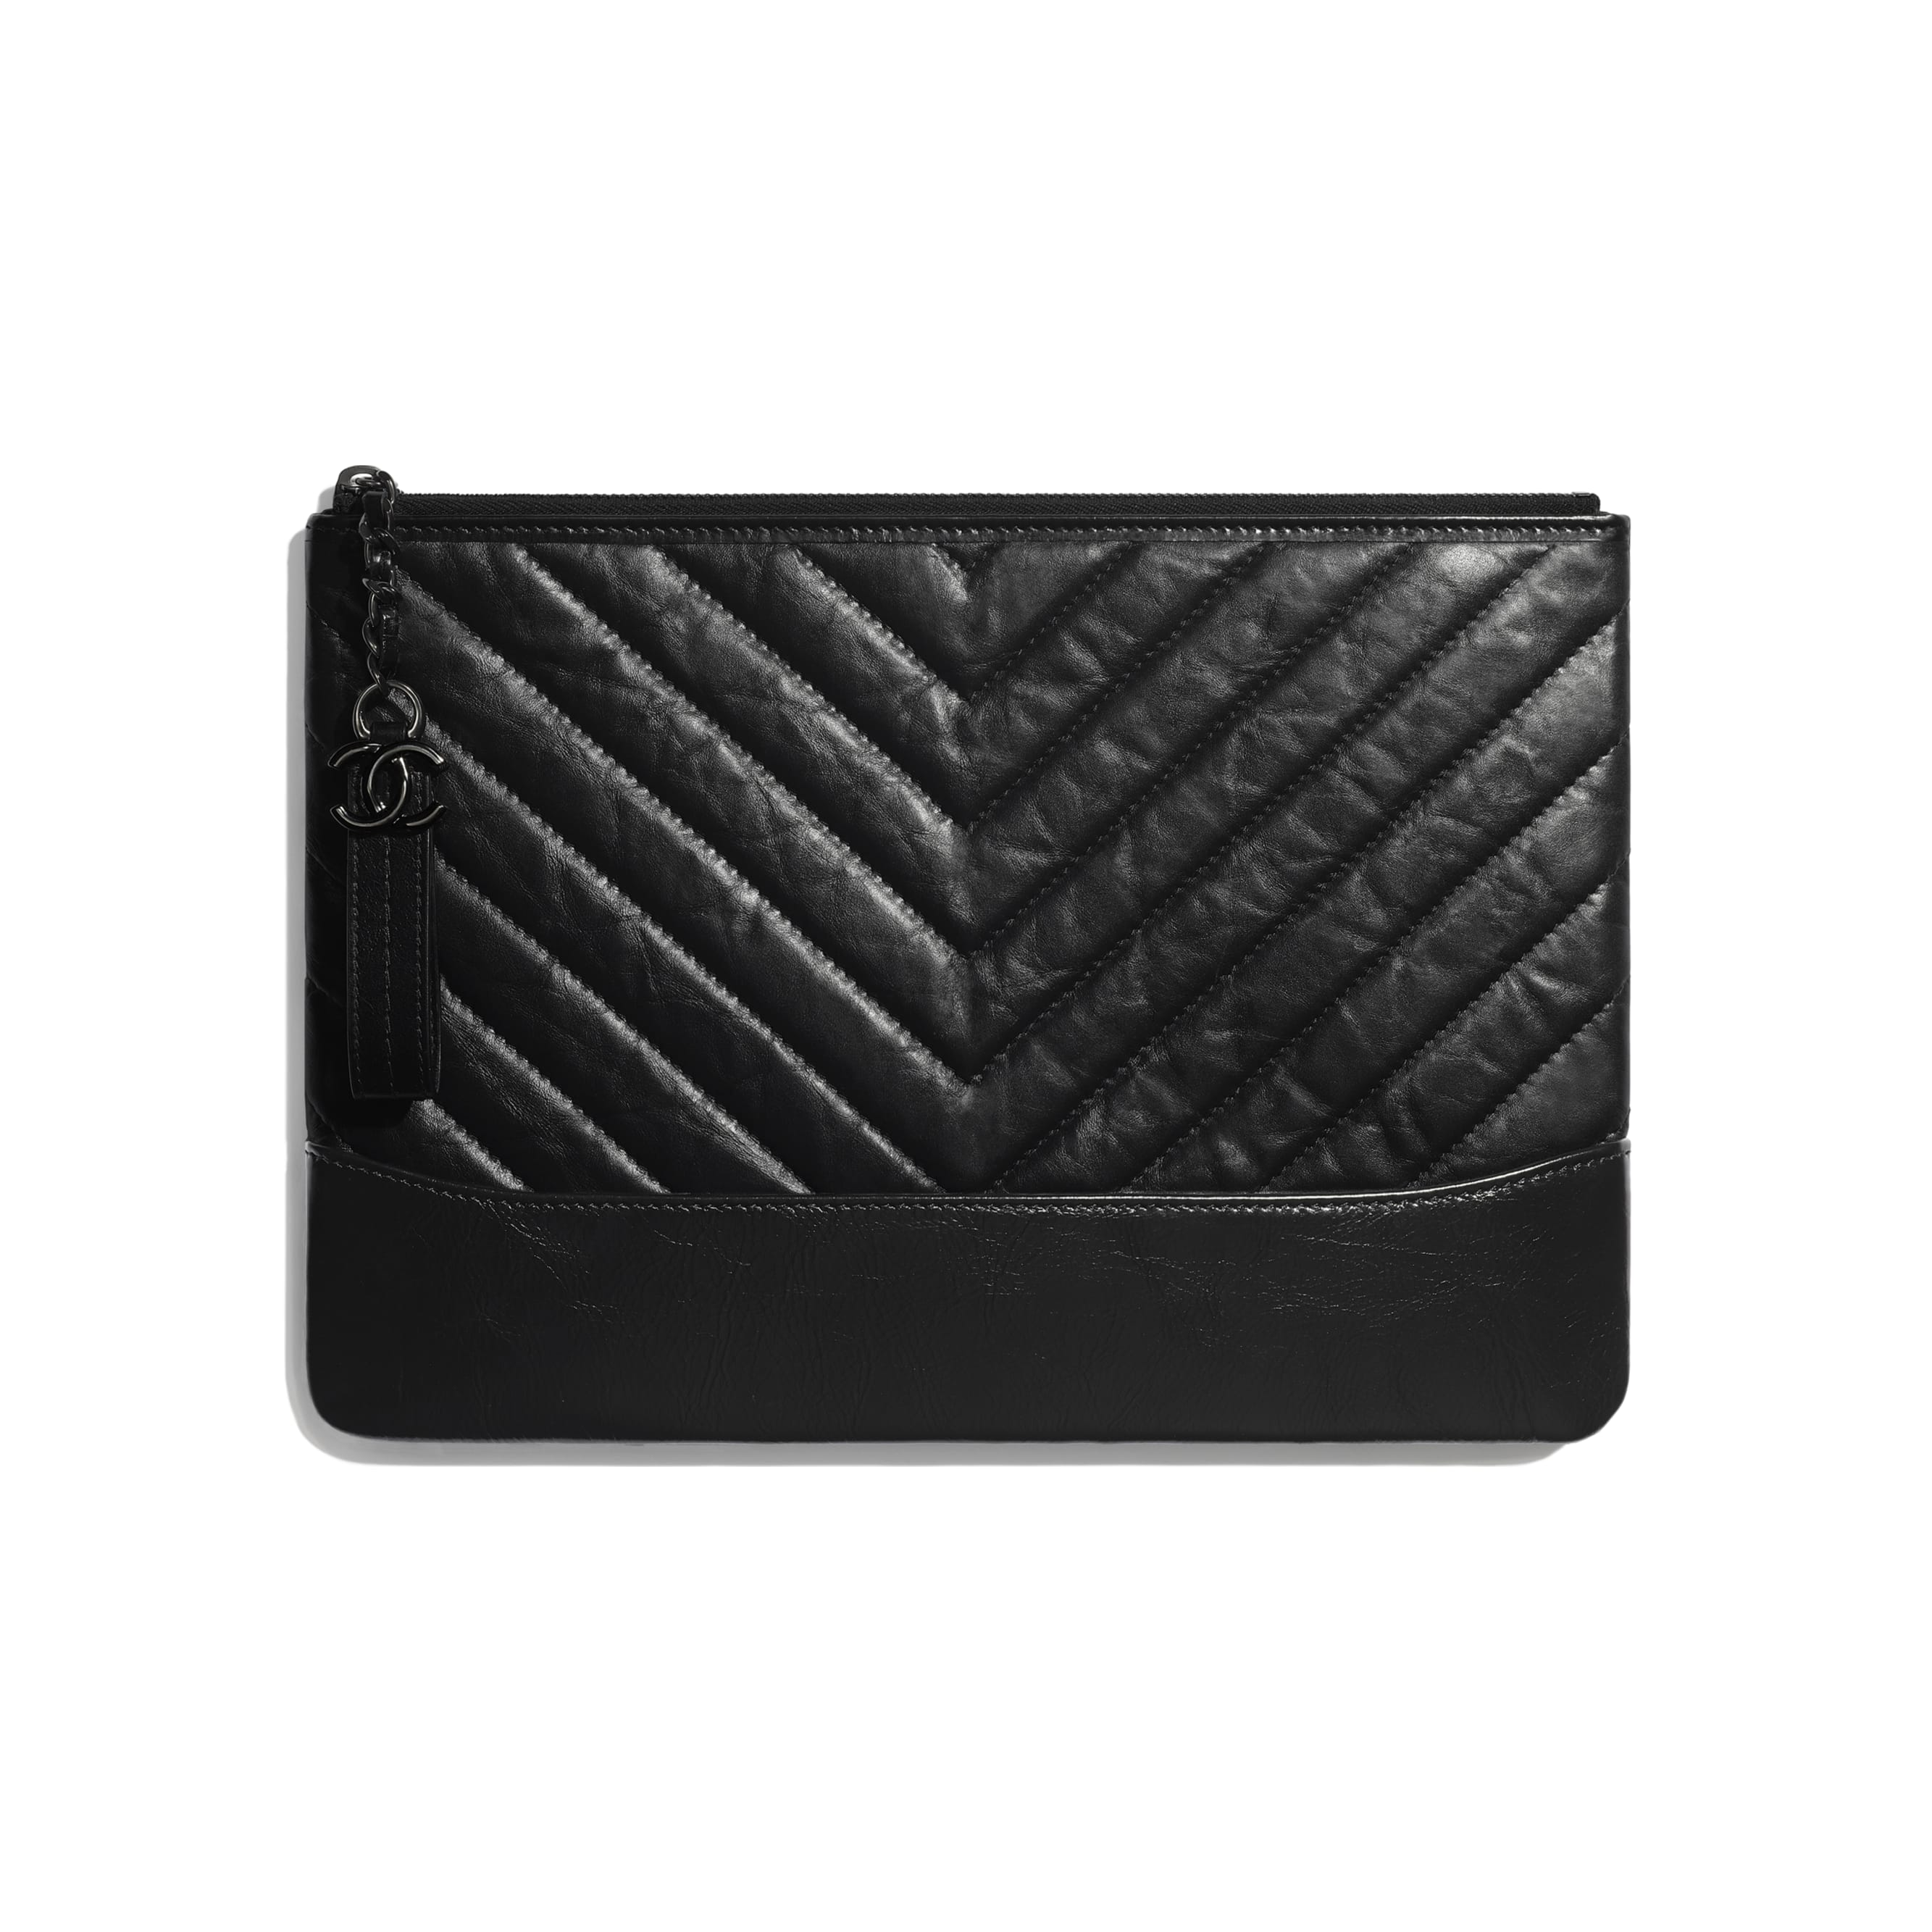 Pouch - Black - Aged Calfskin, Smooth Calfskin & Black Metal - Default view - see standard sized version